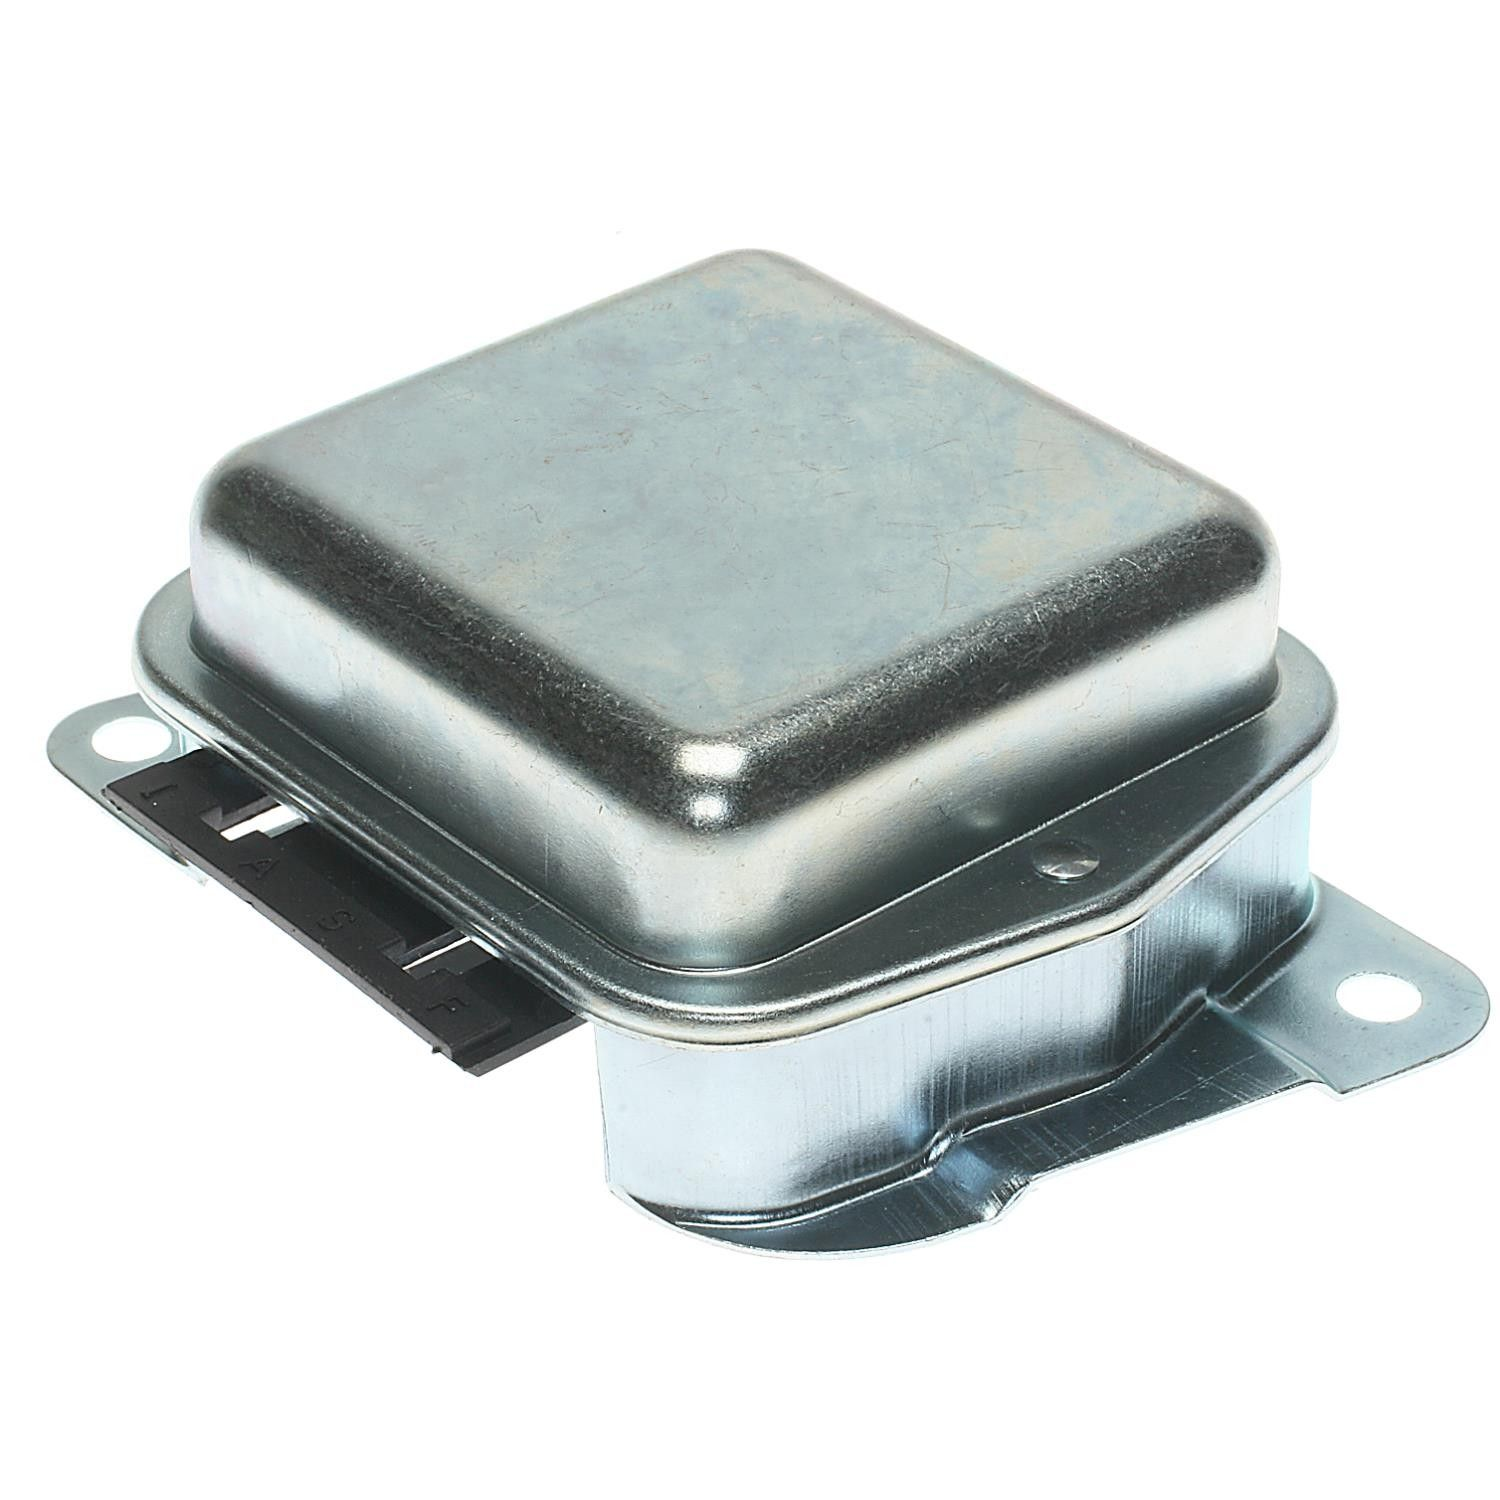 Ford Galaxie Voltage Regulator Replacement Standard Ignition True 65 Wiring 1965 Tech Vr166t 4 Wires